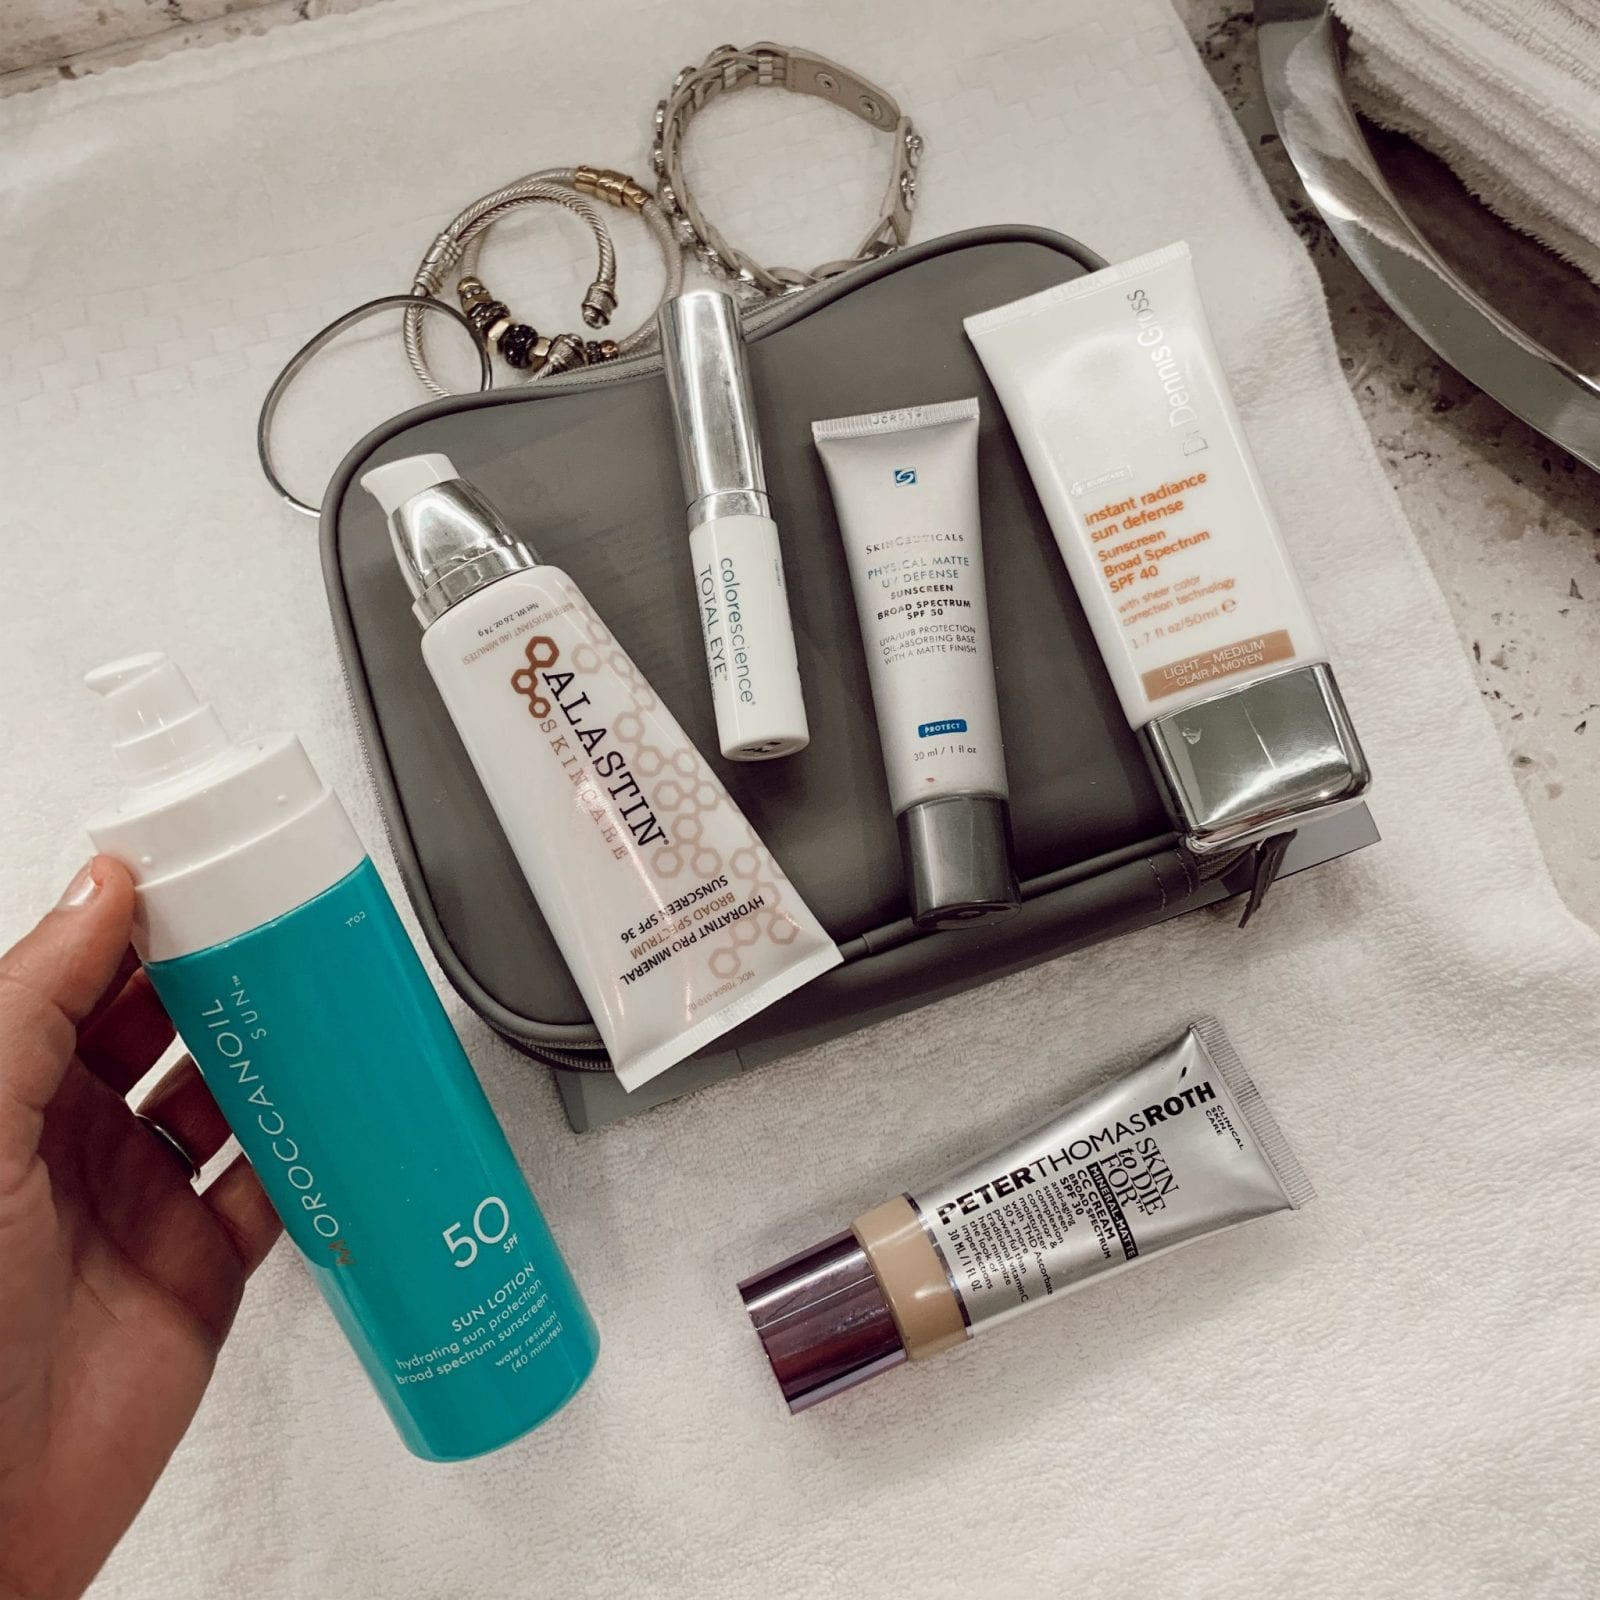 This is a flat lay of my favorite sunscreen products, including Skinceuticals, Dr Dennis Gross, Moroccan Oil, Peter Thomas Roth and Colorscience.